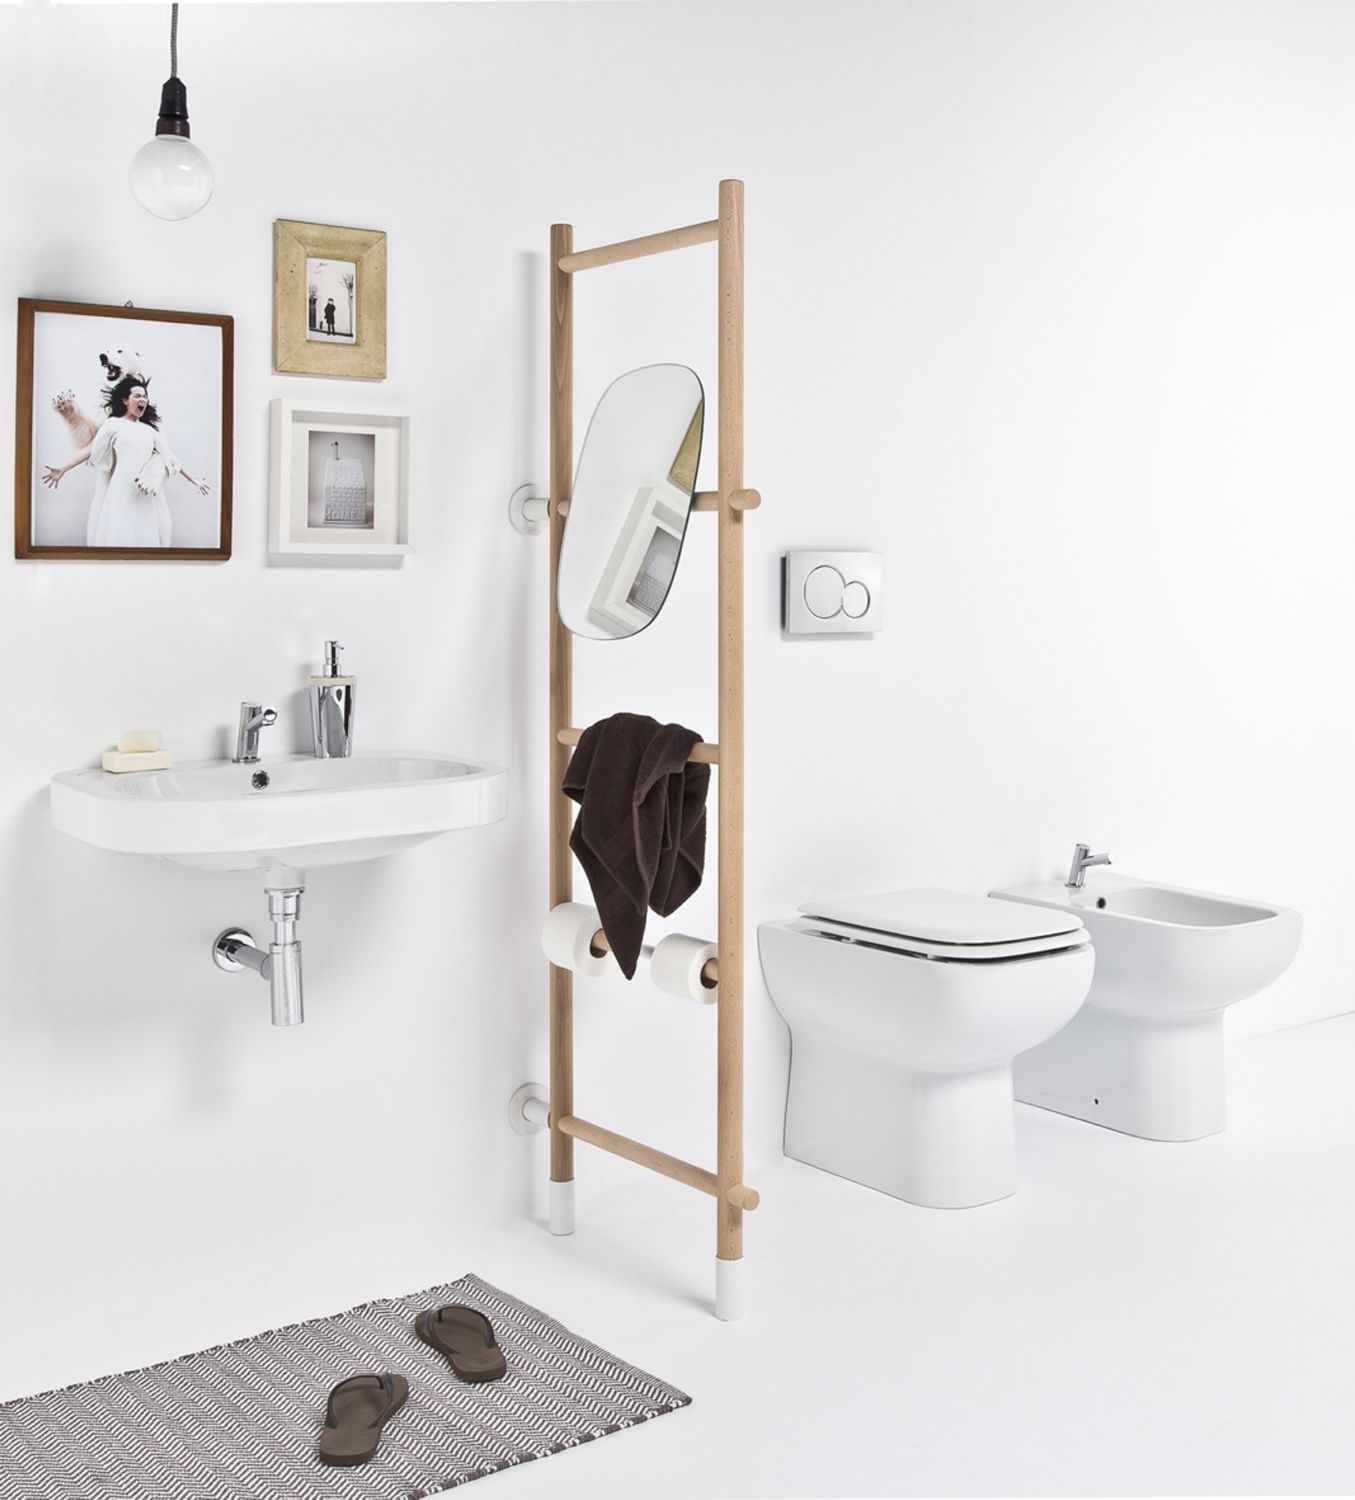 accessori bagno foto 1 livingcorriere tiny house